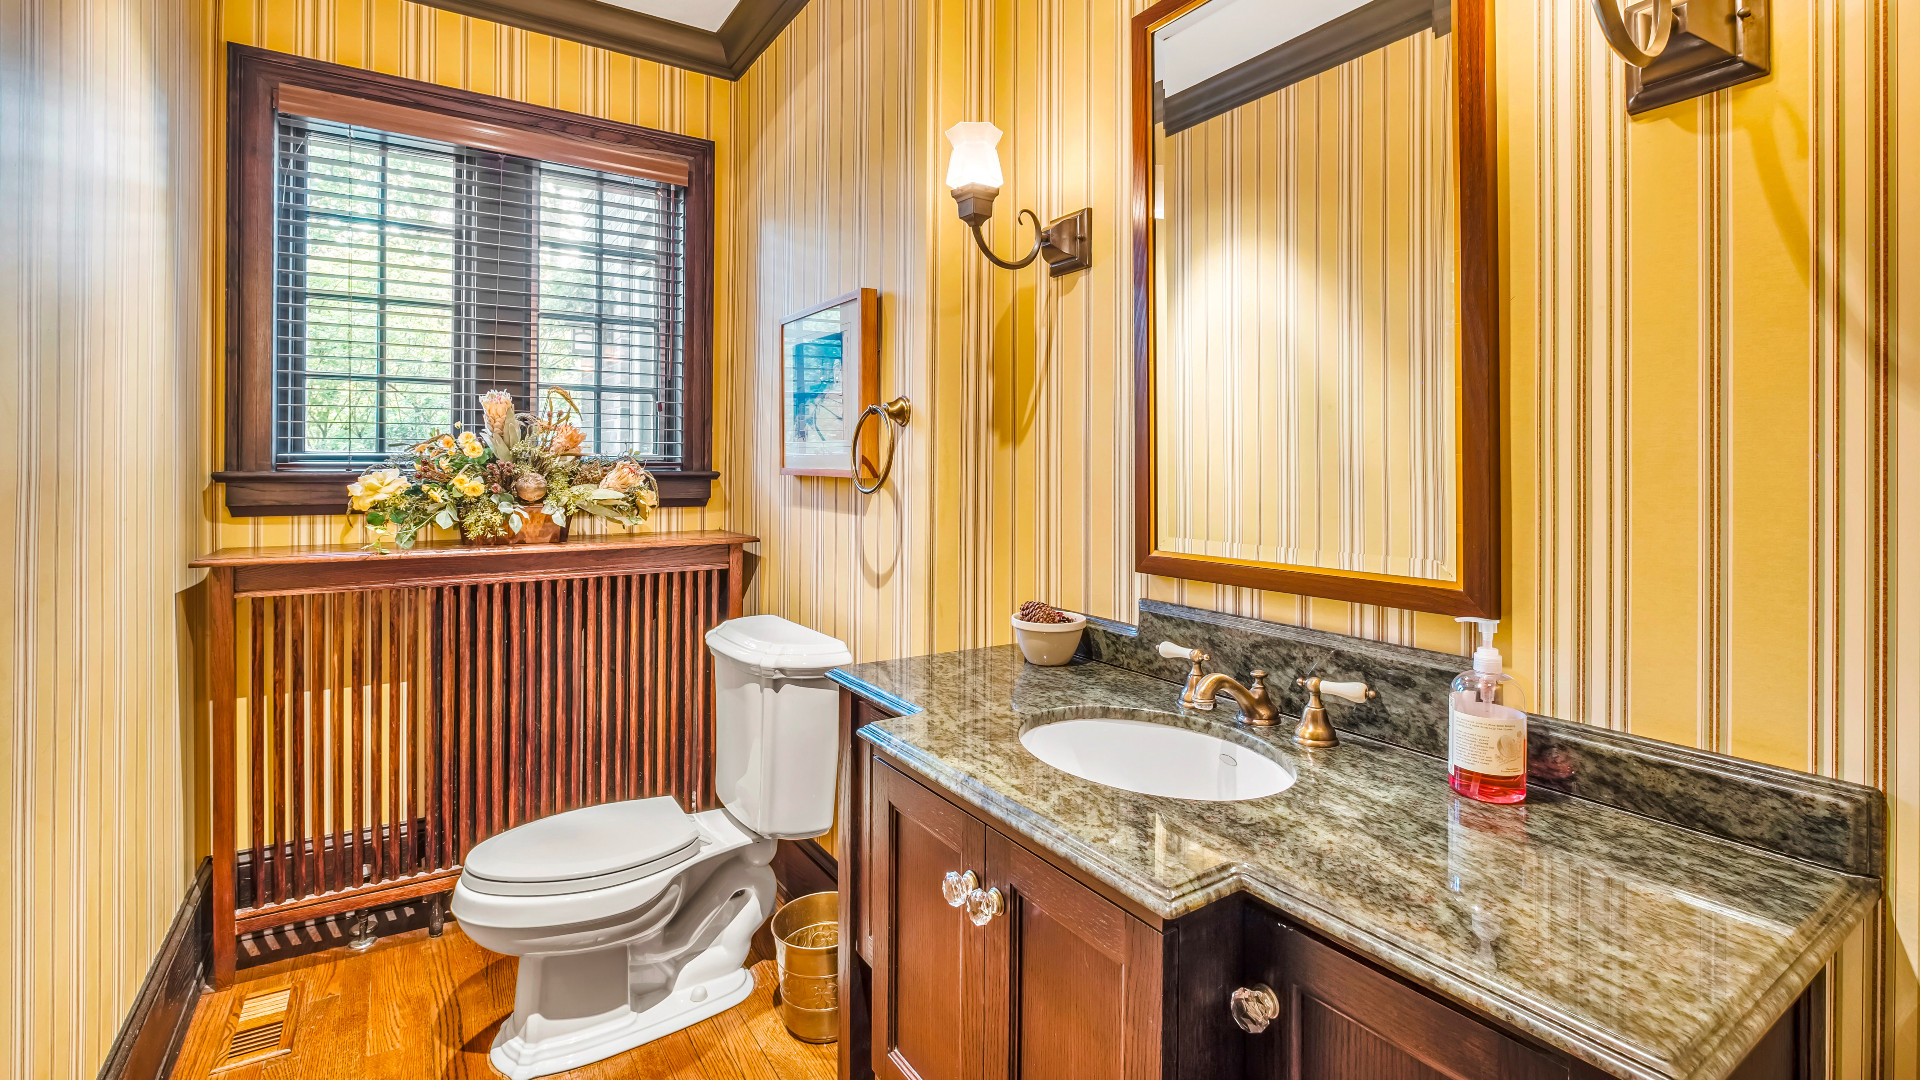 A photo of one of the powder rooms.